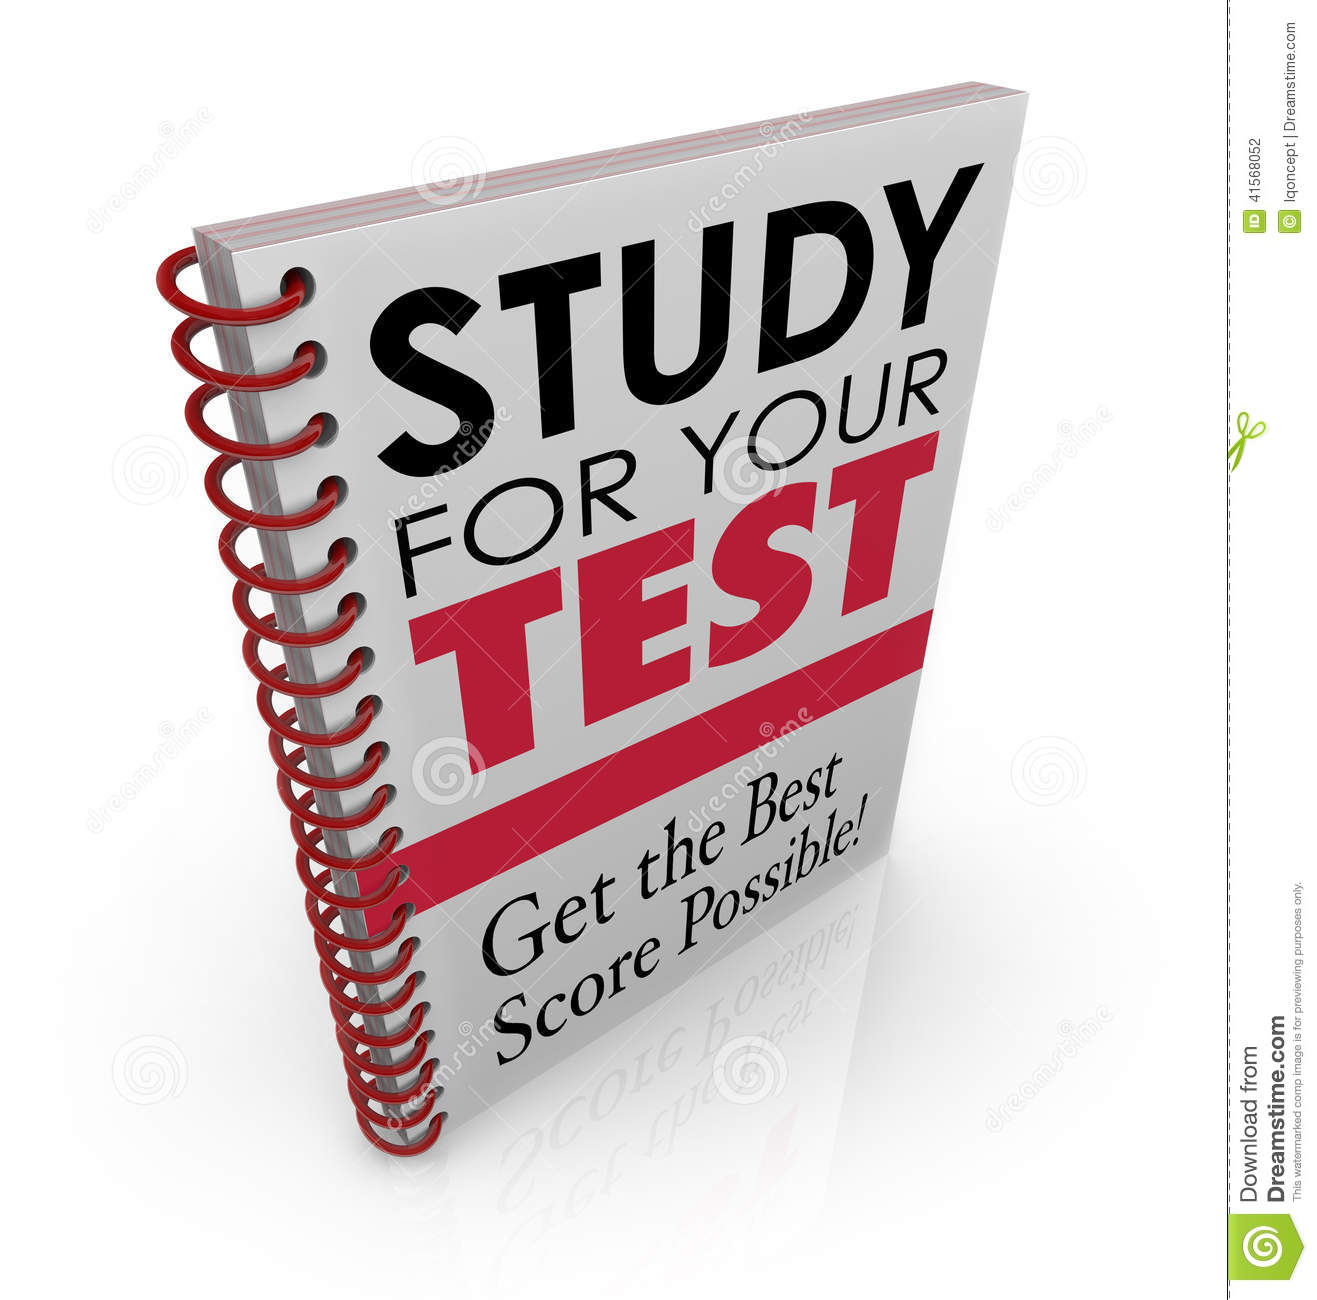 Final Exam Study Guide- Test is Friday, April 27, 7:30 p.m.